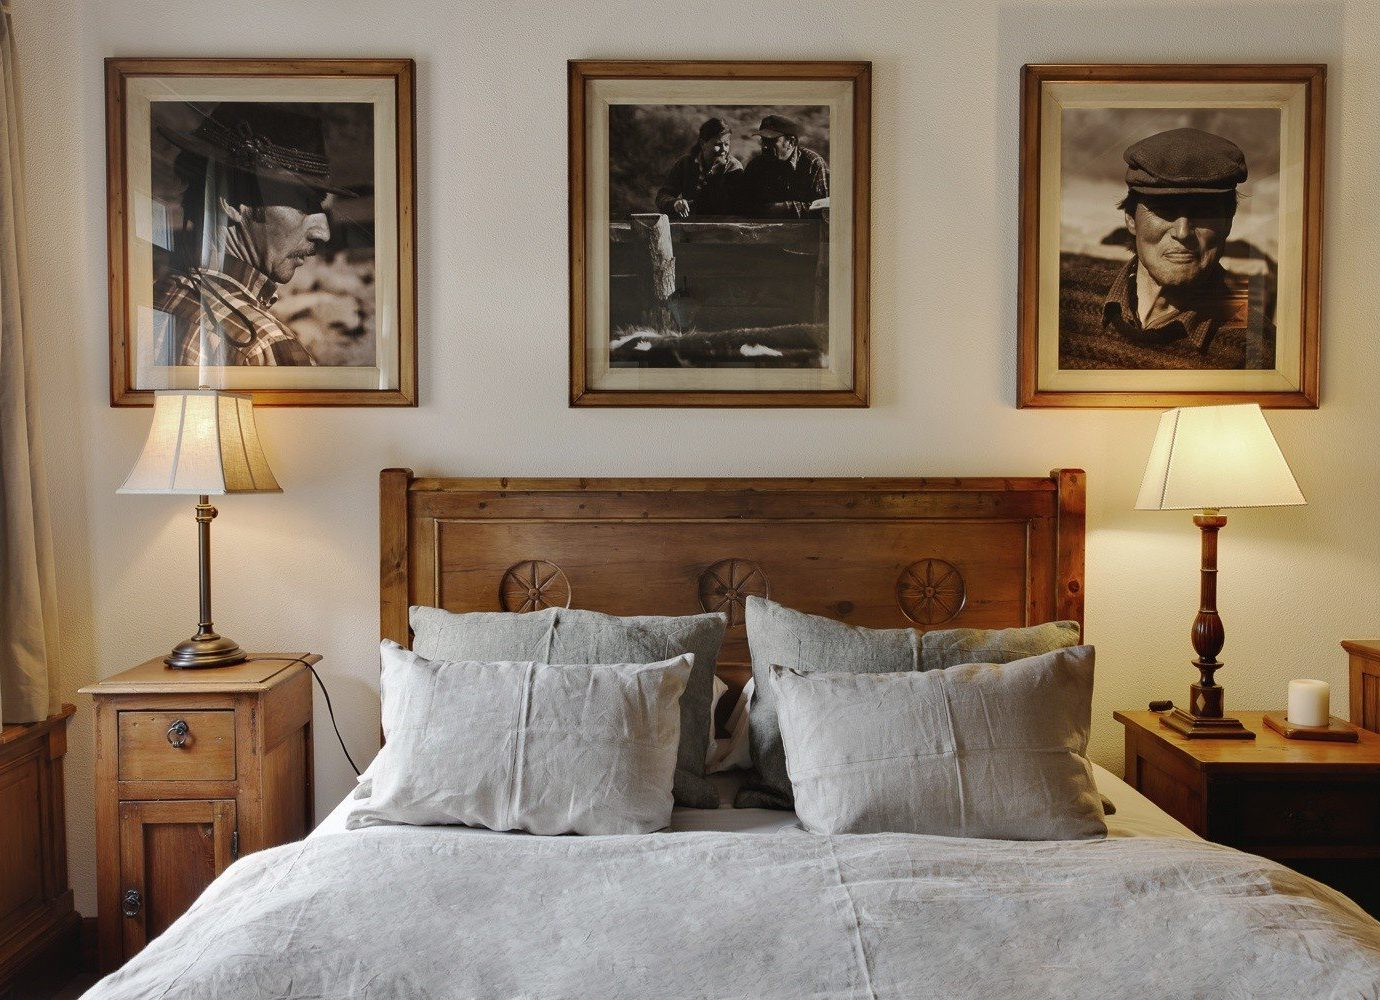 Hotels indoor bed wall room property Bedroom home estate living room furniture interior design wood cottage decorated painting